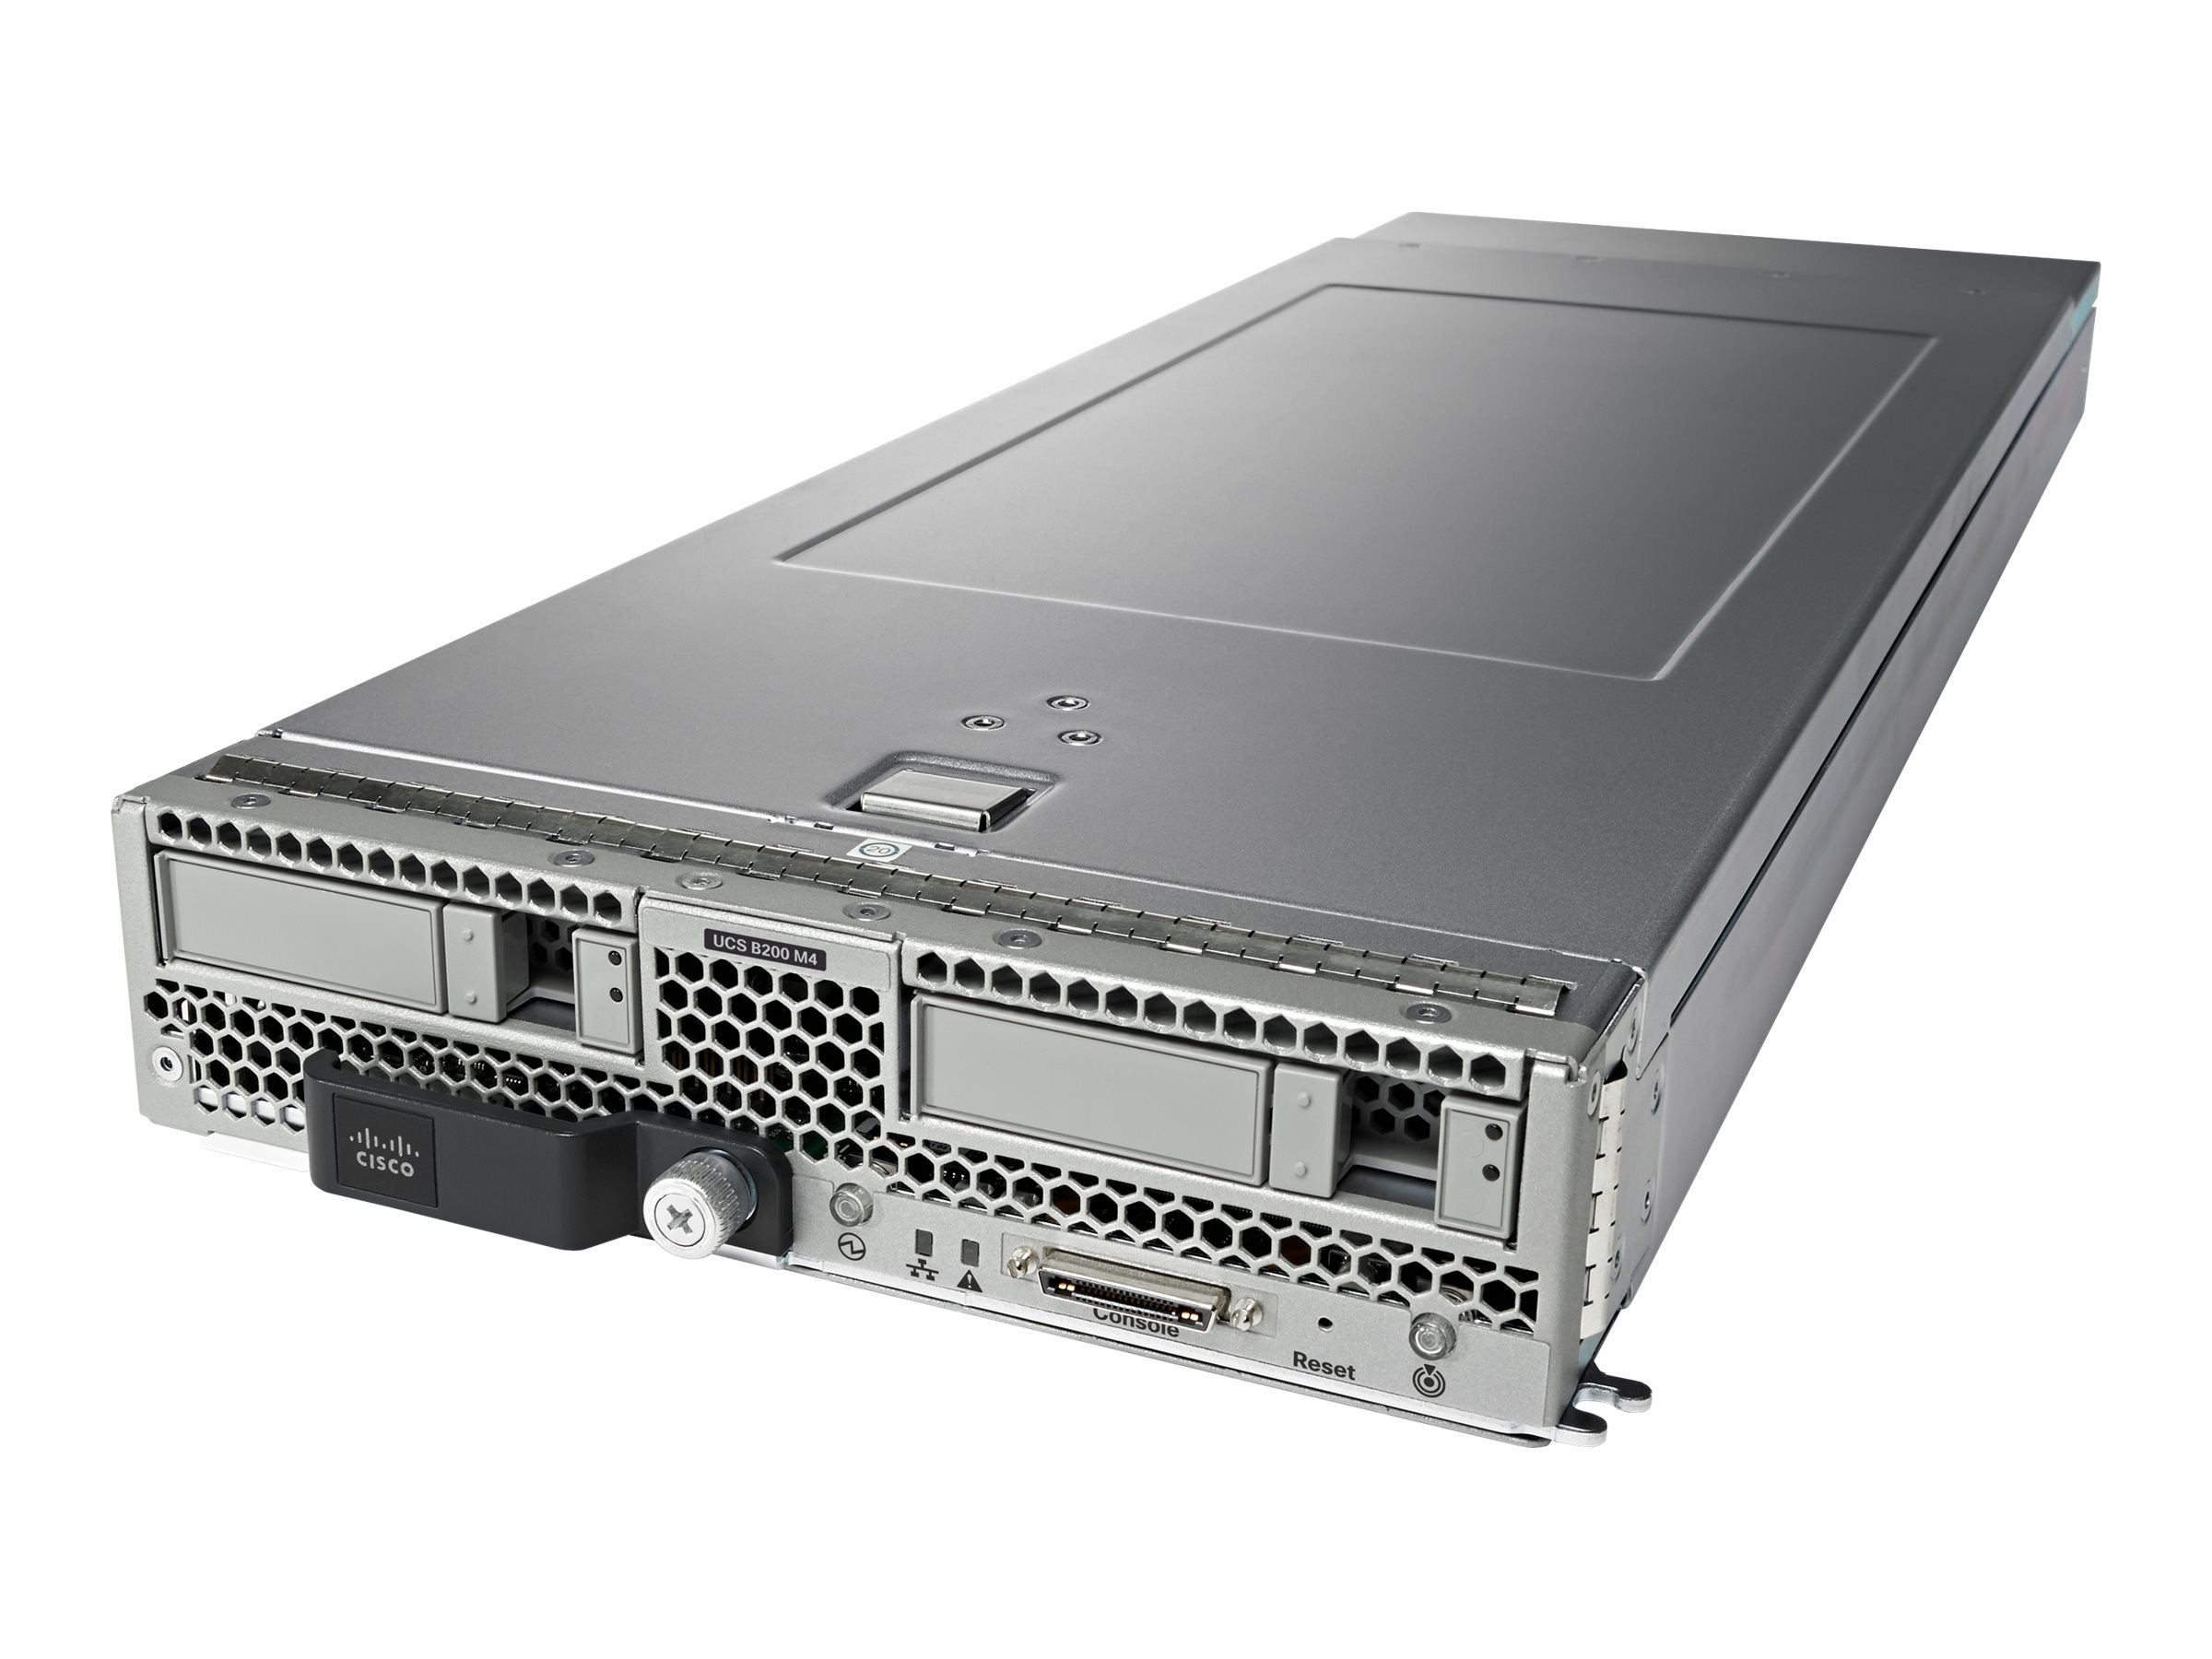 Cisco UCS SP Select B200 M4 Advanced 4 Blade (2x)Xeon E5-2660 v3 256GB VIC1340, UCS-SP-B200M4-A4, 30859836, Servers - Blade